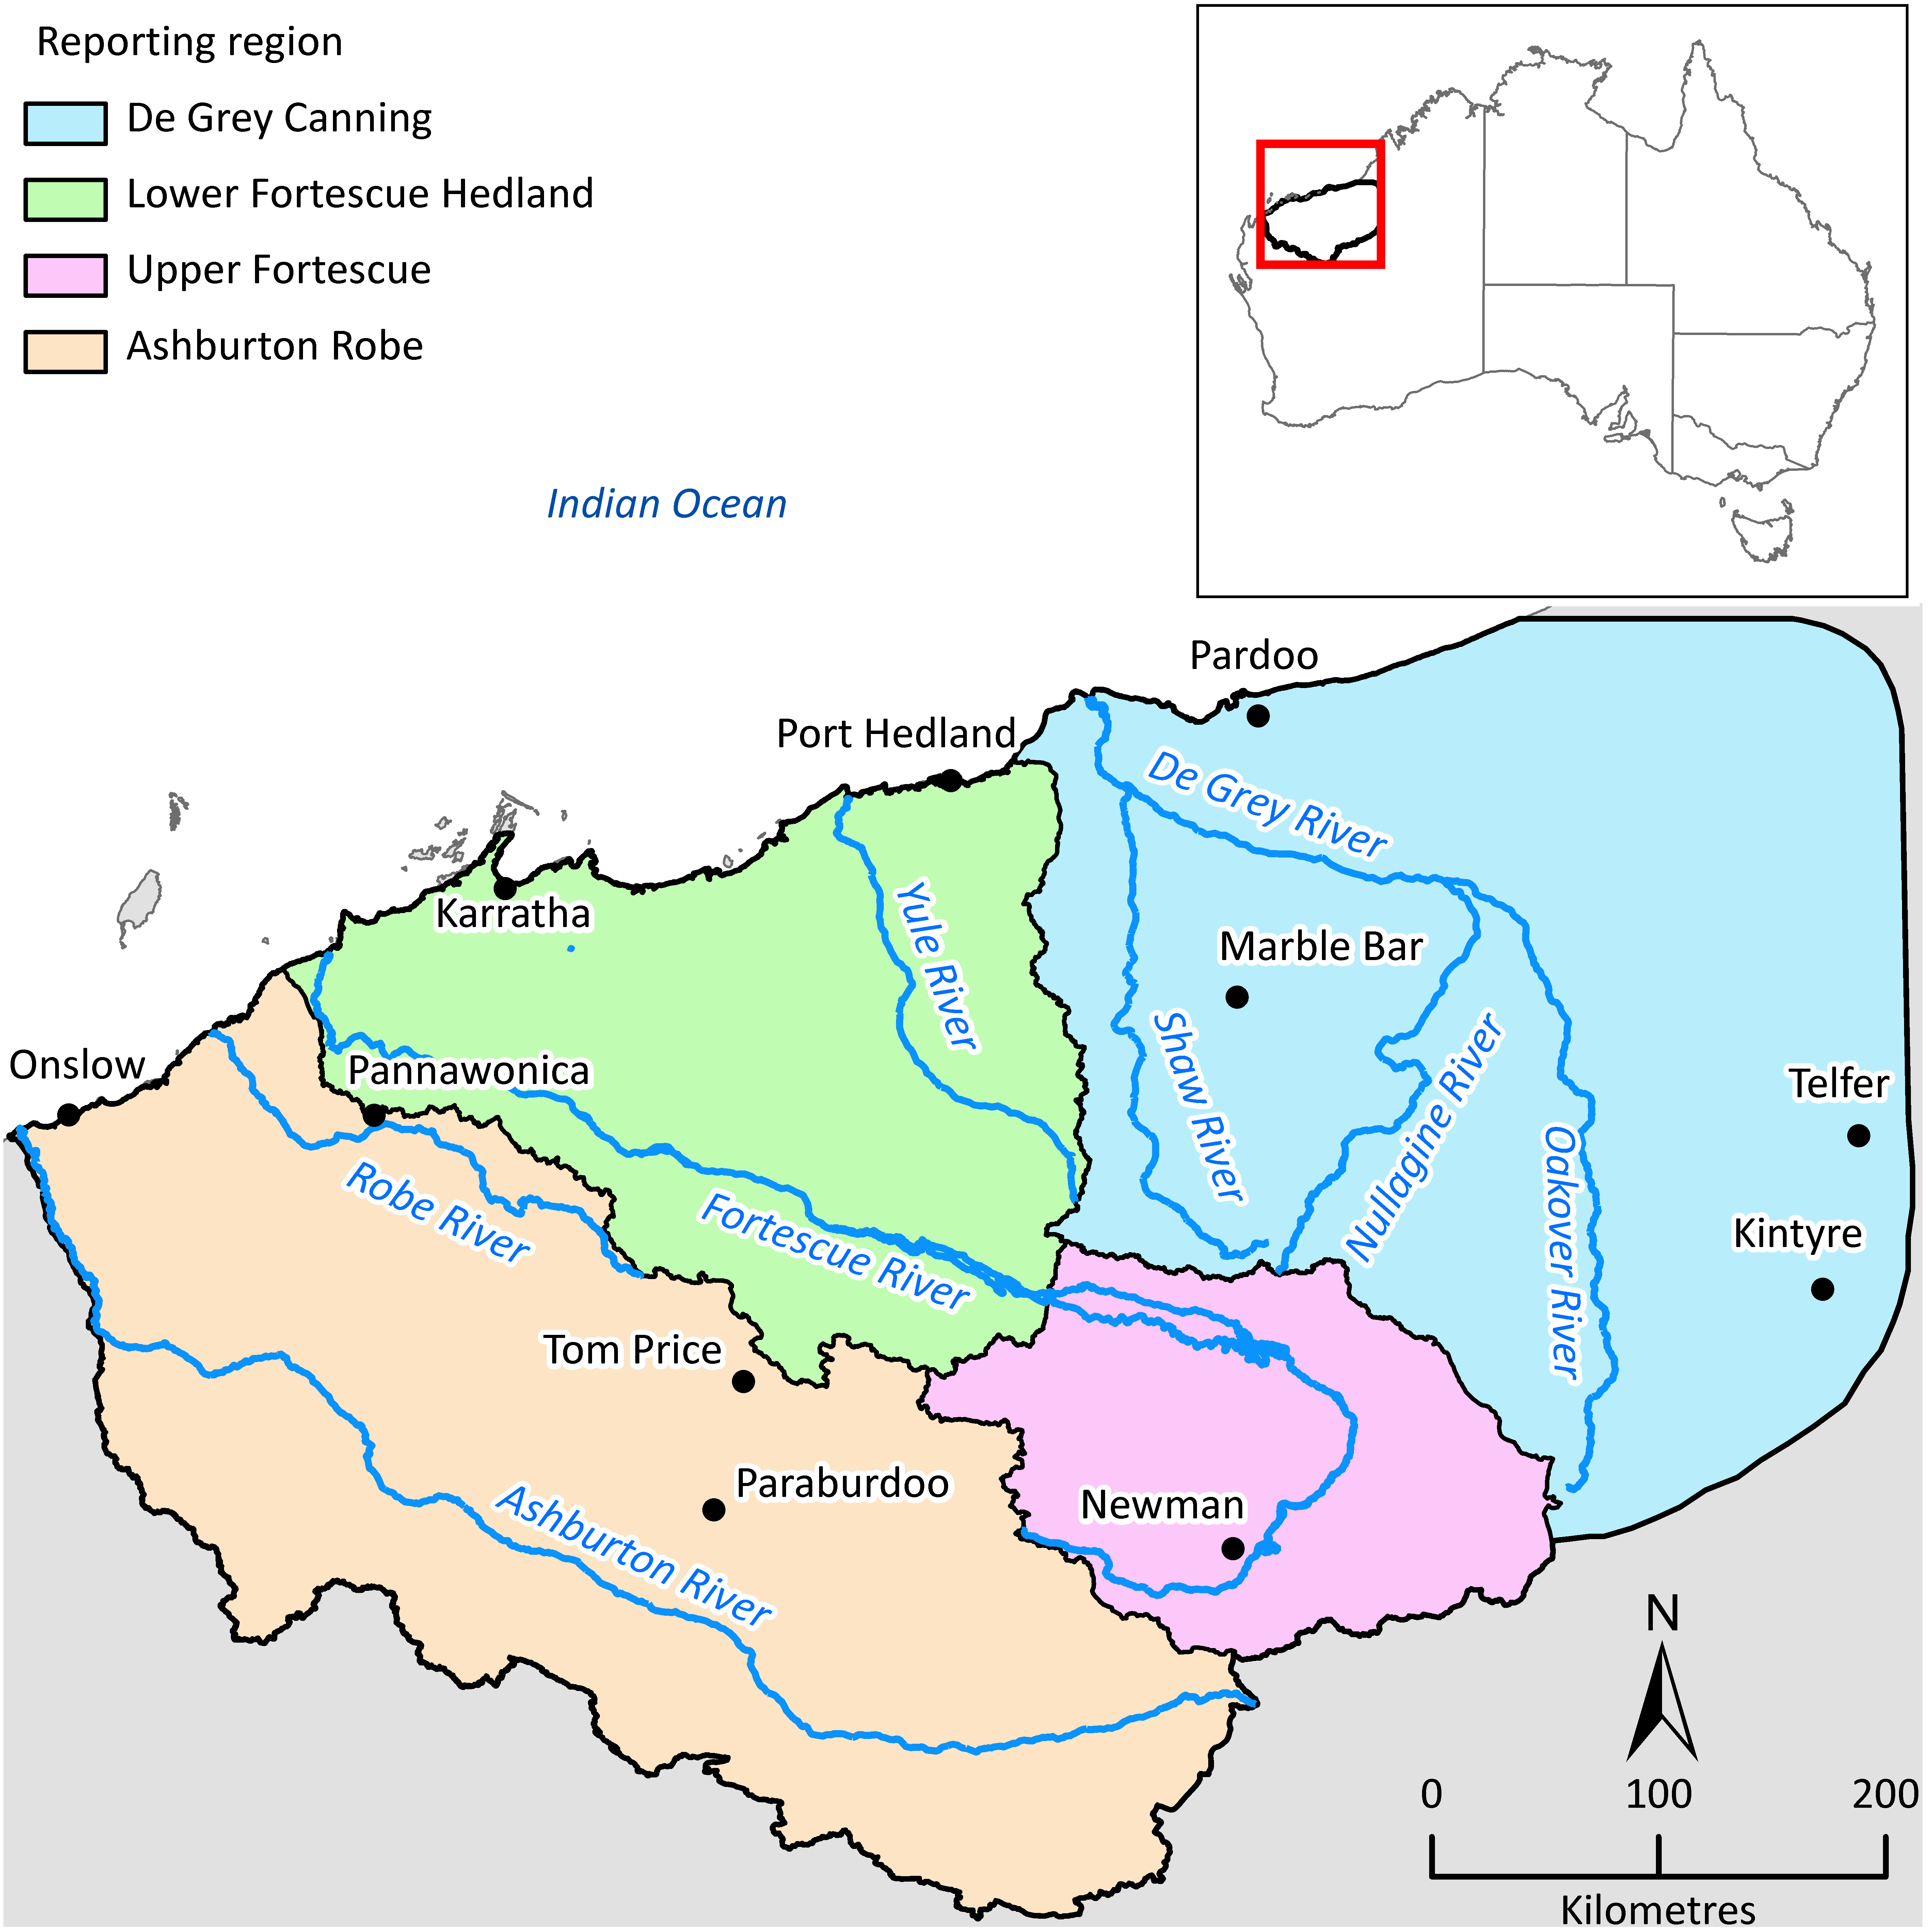 A map showing a highlighted area in north western Australia, which is divided into four sections called Ashburton Robe, De Grey Canning, Lower Fortescue and Upper Fortescue. The area's major rivers and towns are indicated on the map.